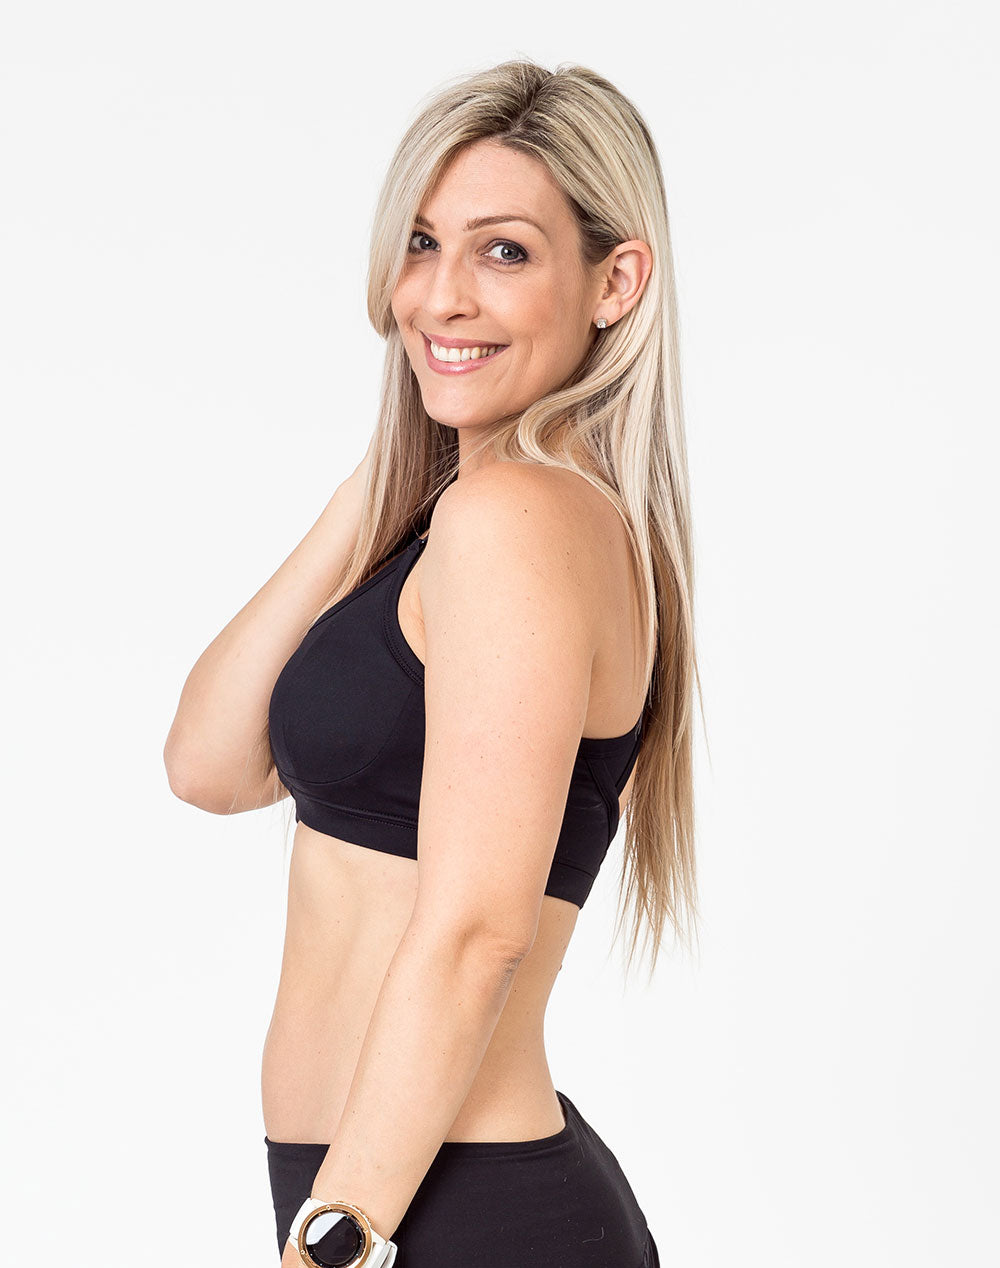 mom wearing a black racerback nursing bra side view